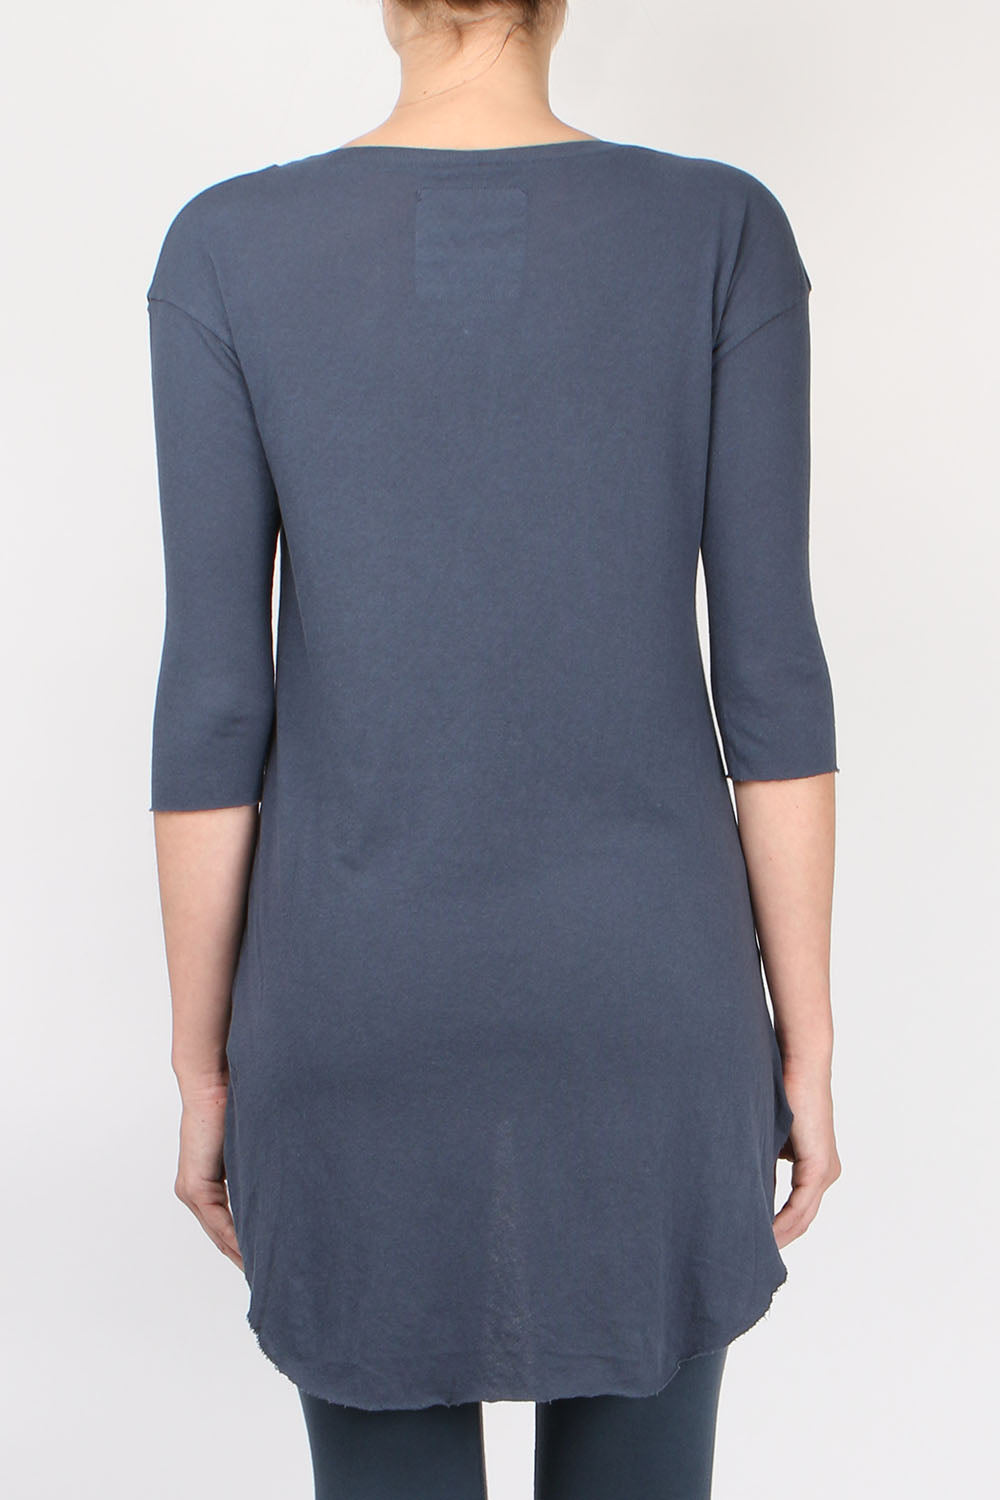 Tee Lab by Frank & Eileen Elbow Sleeve Shirttail Back